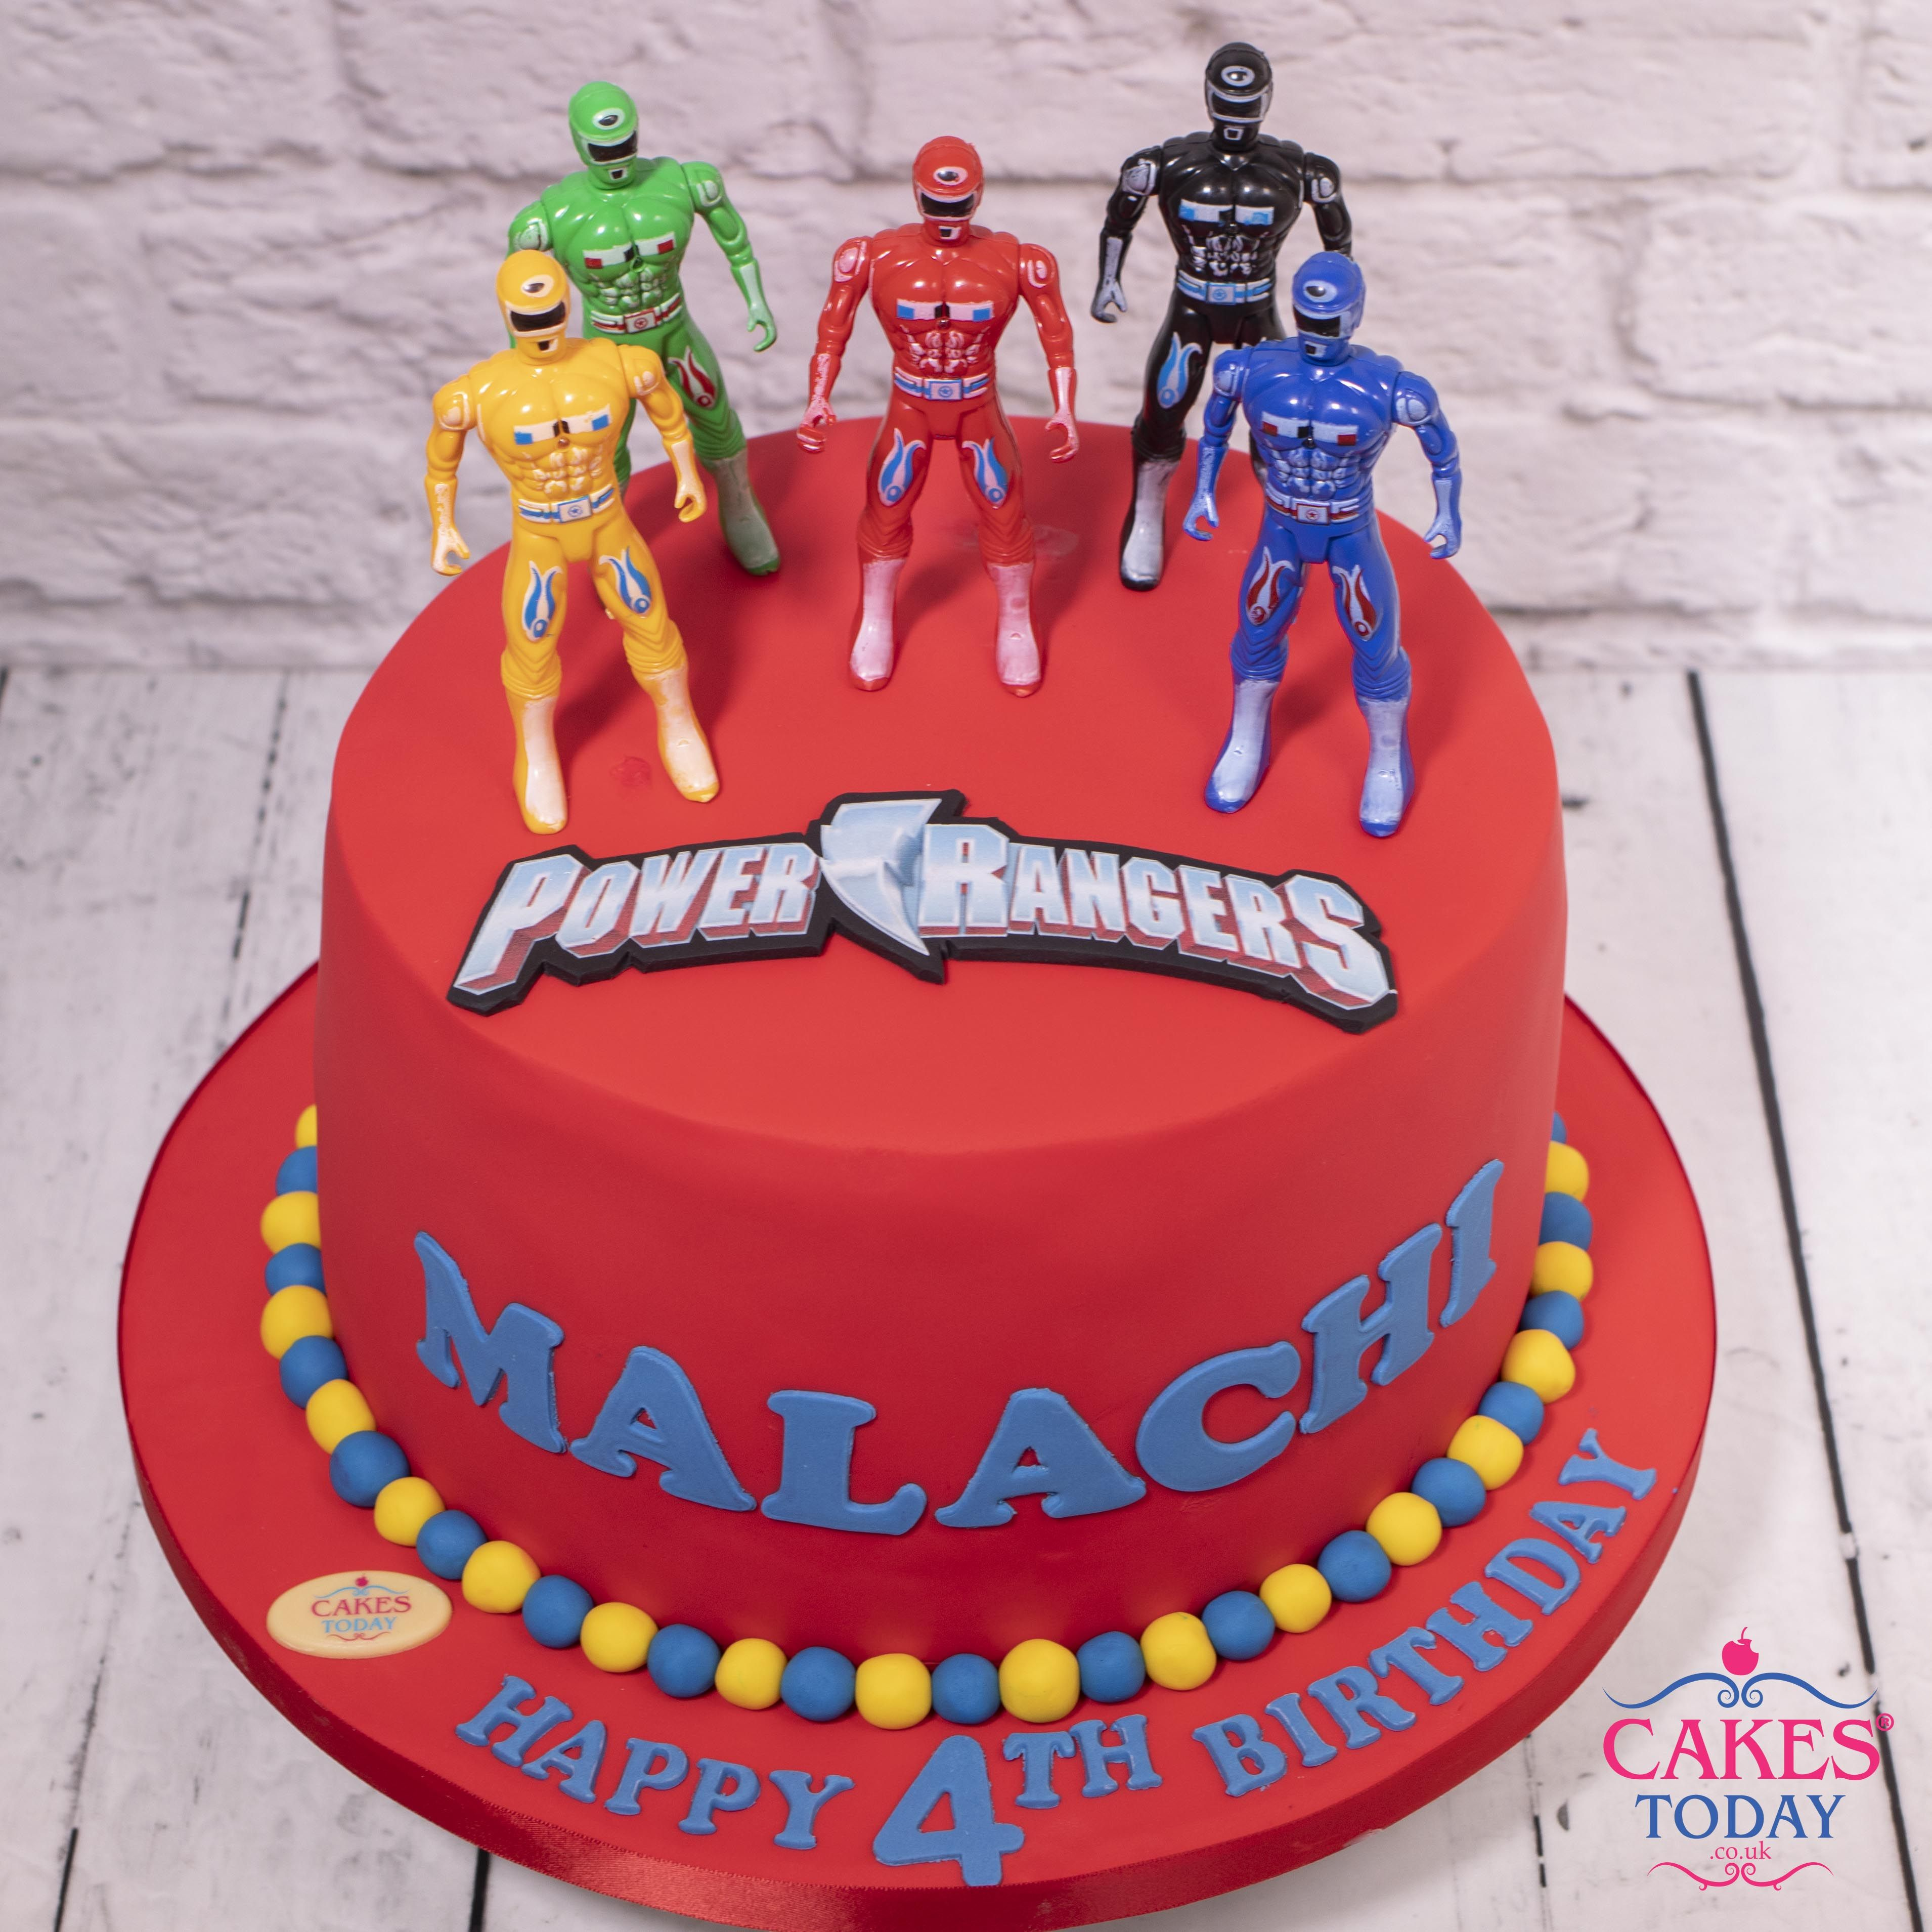 Power Rangers Making The Cake Explode Just By Posing Ifyouknowyouknow Power Rangers Birthday Cake Power Ranger Birthday Turtle Birthday Cake